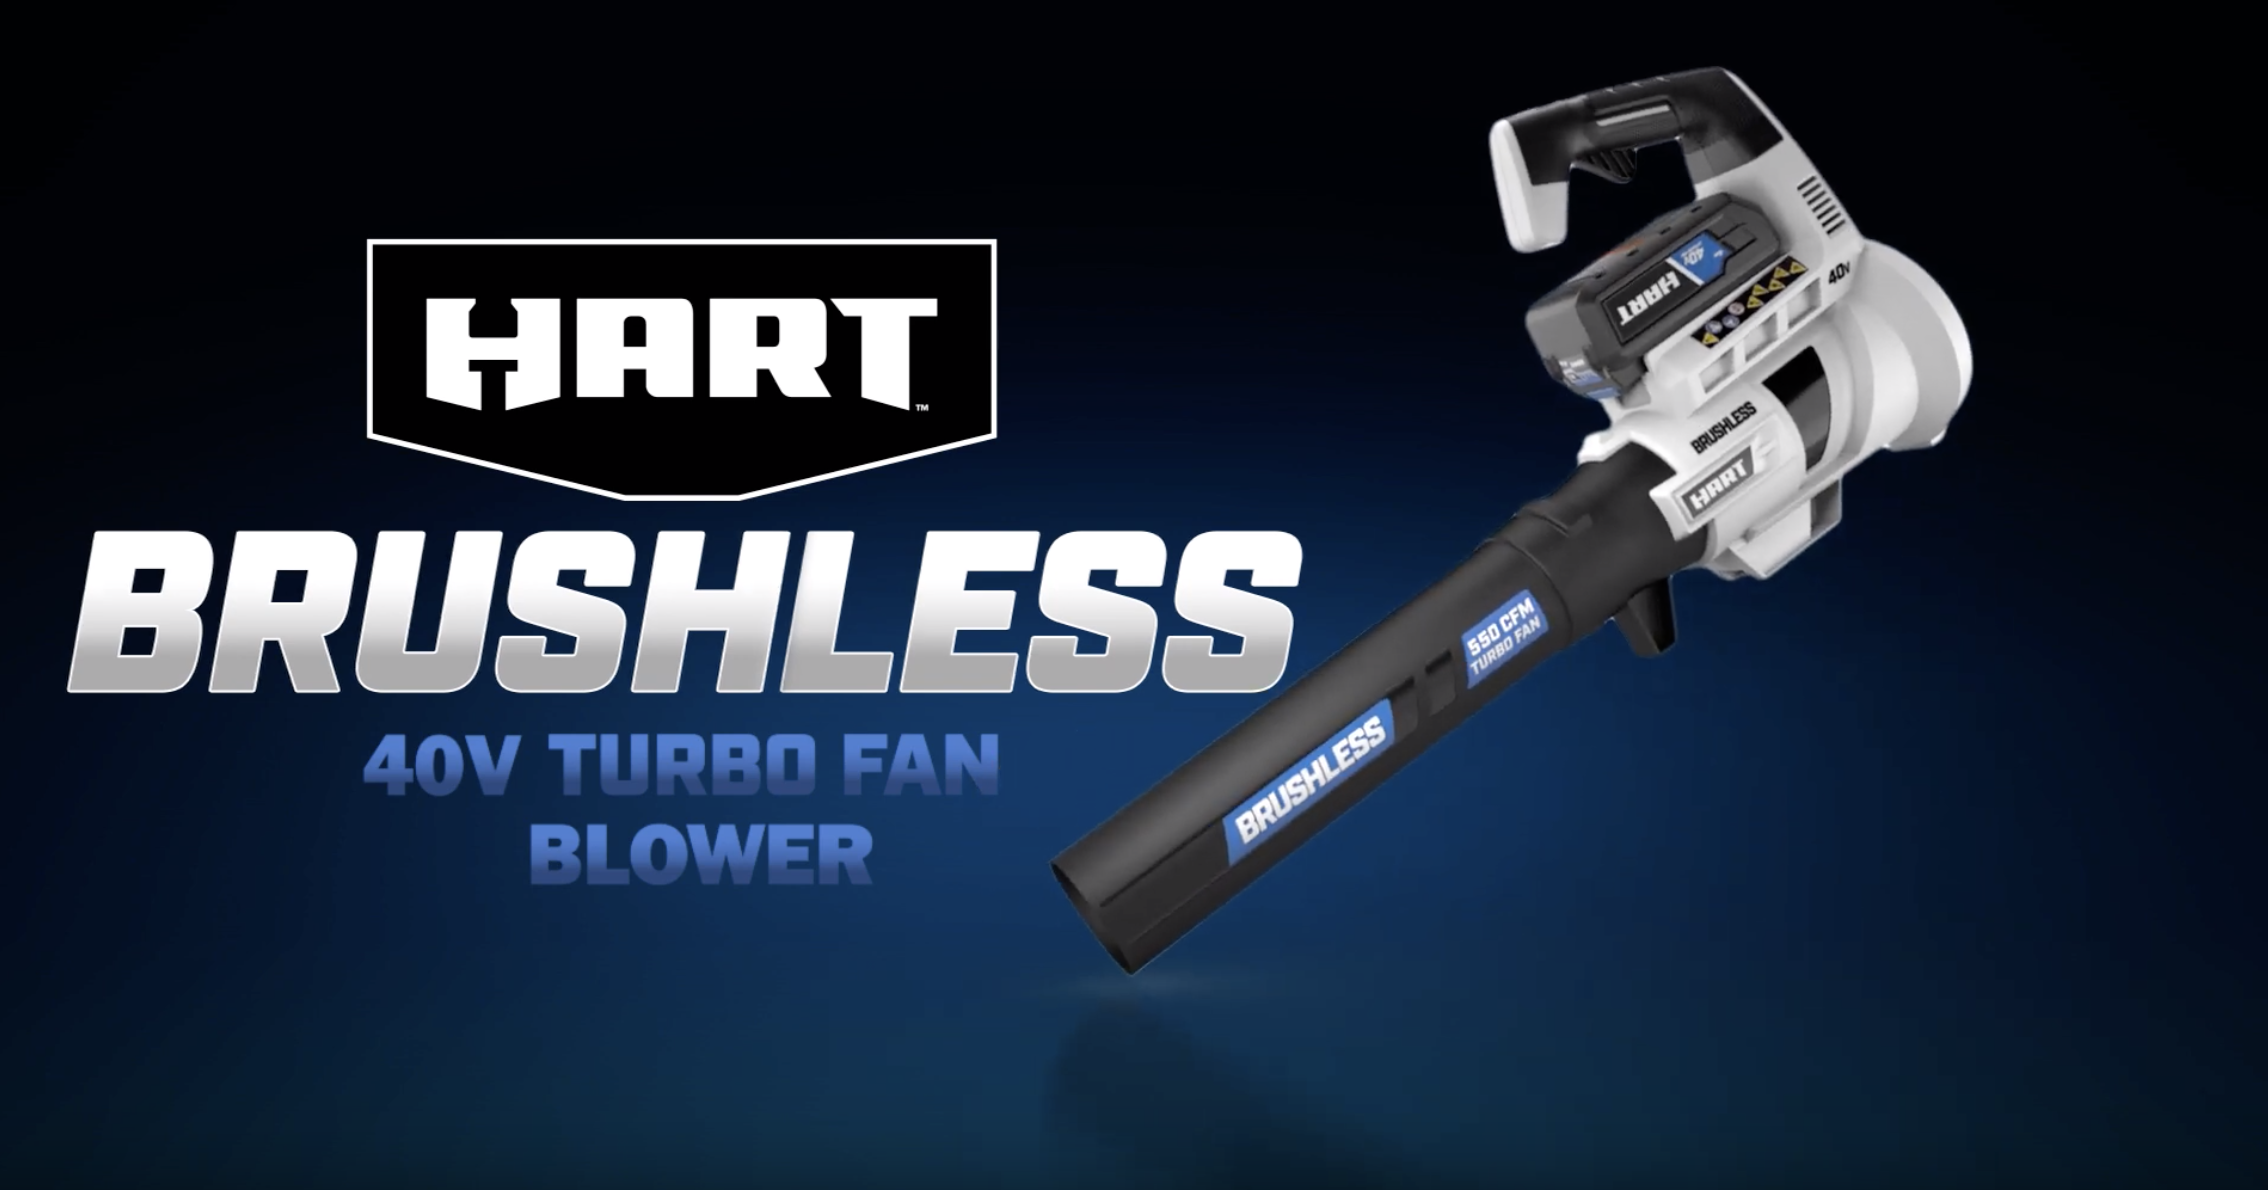 40V Brushless Turbo Fan Blower